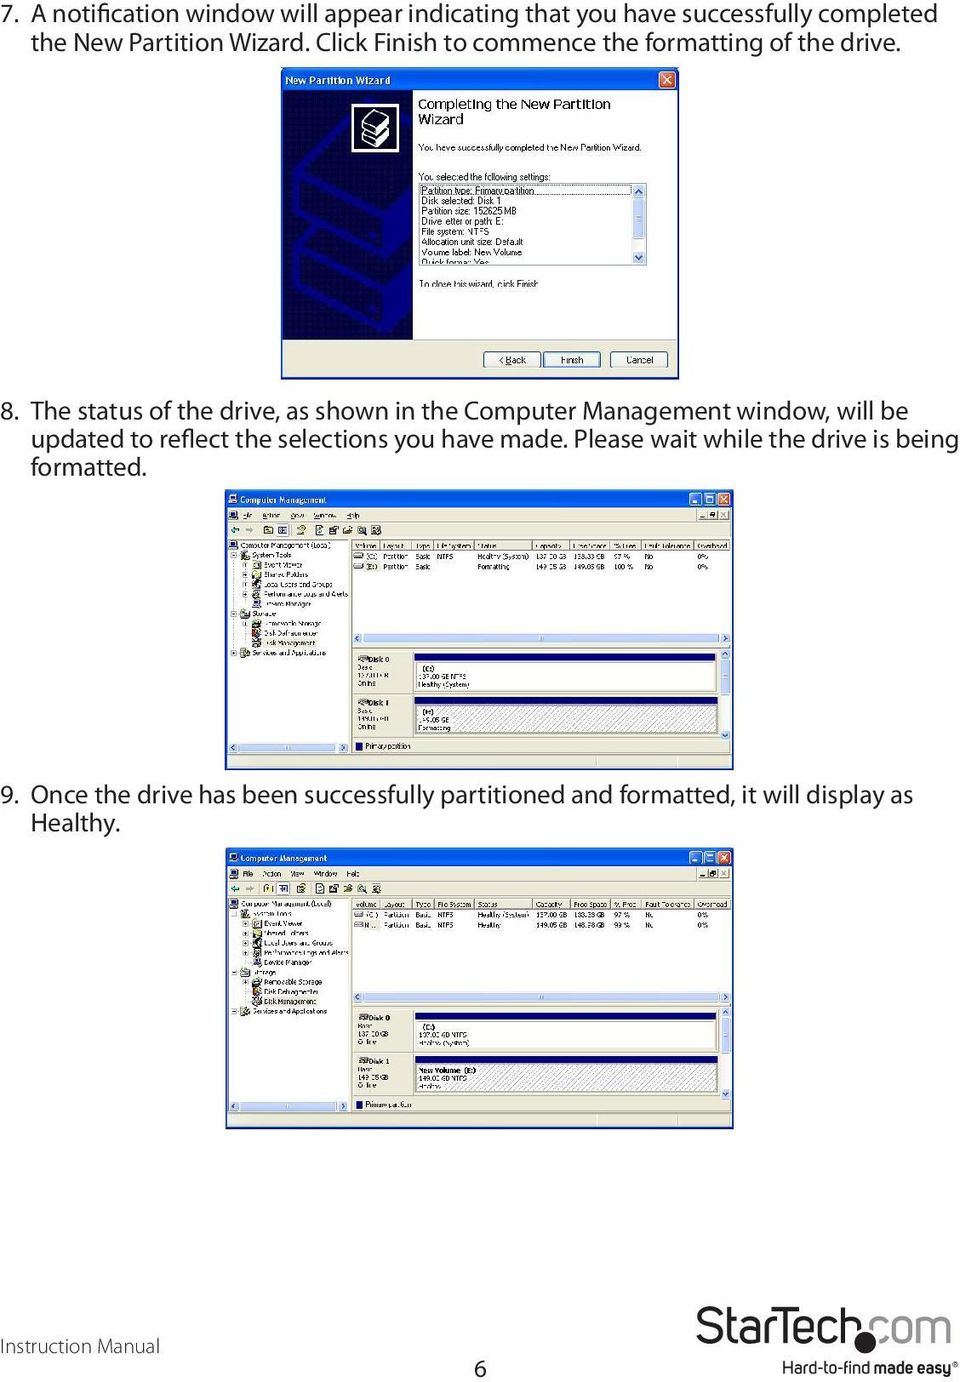 The status of the drive, as shown in the Computer Management window, will be updated to reflect the